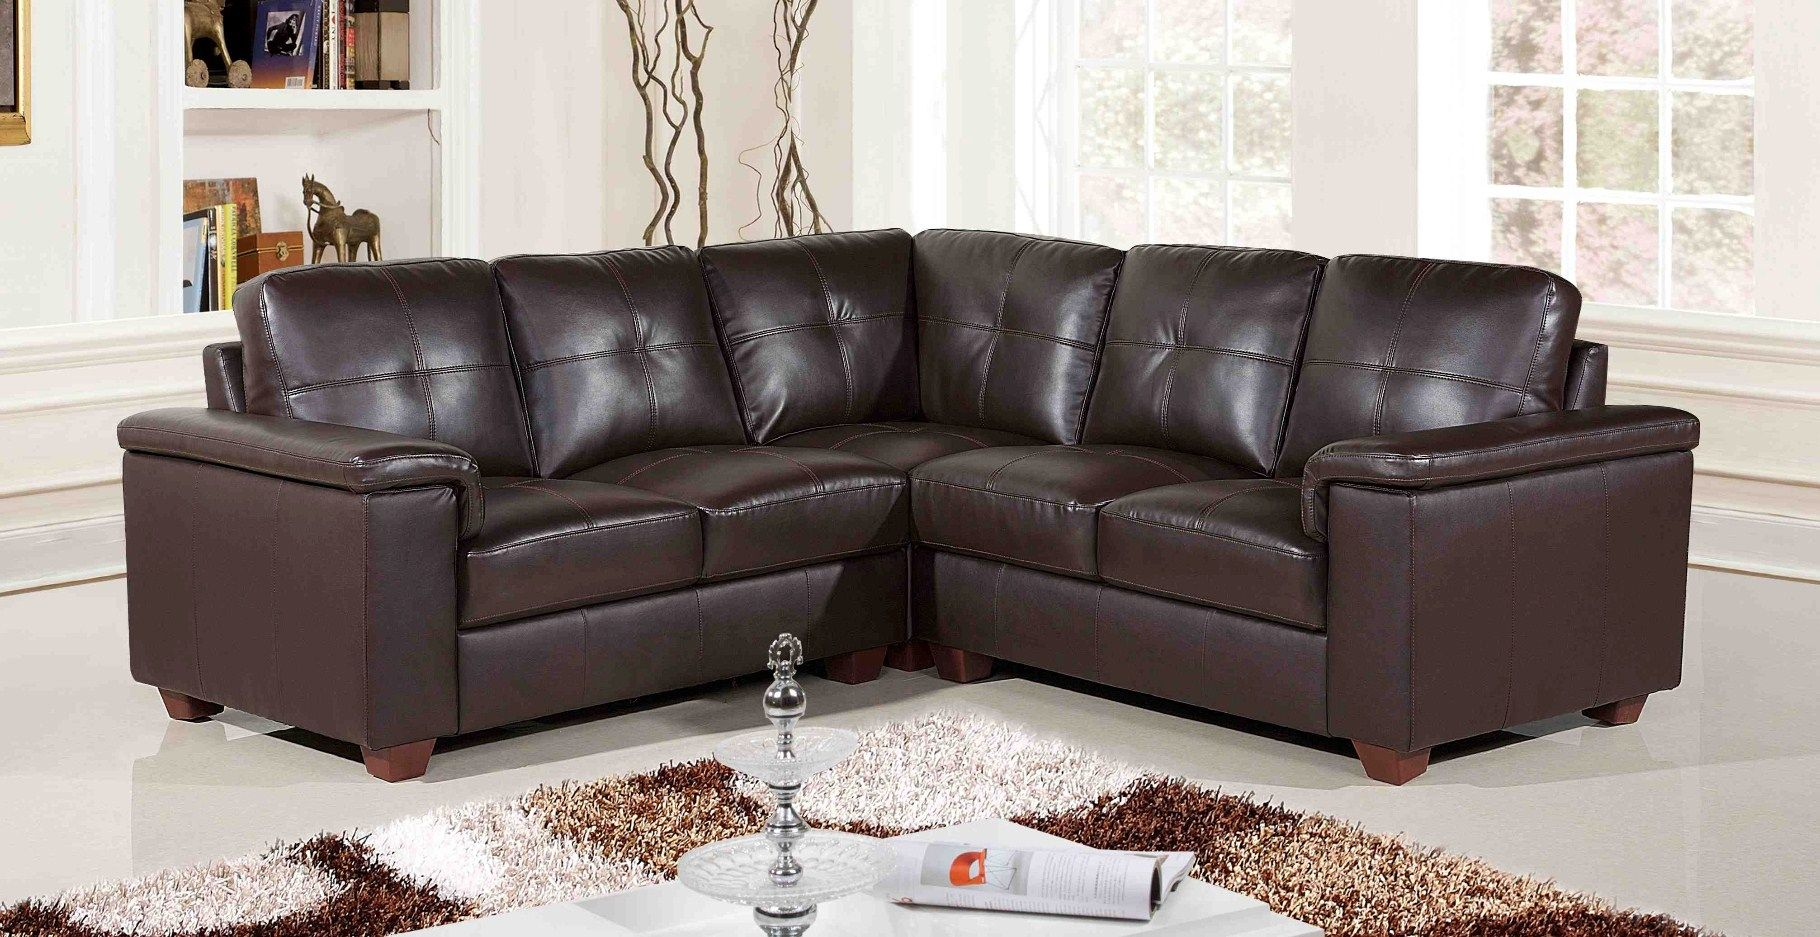 Furniture, Classic Leather Sectional Sofas Affordable Prices ...